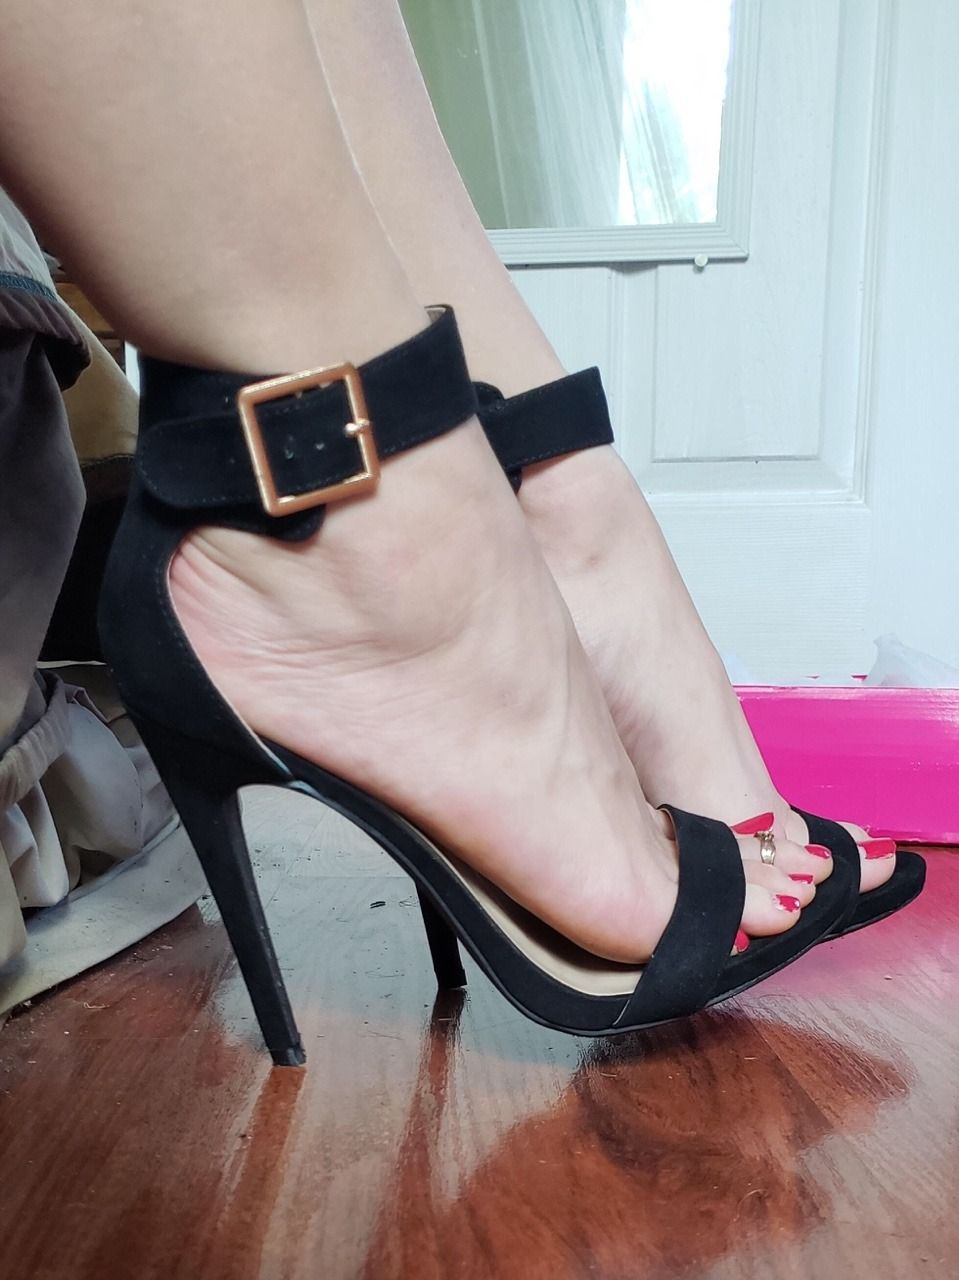 3cc31234d6a2 Sexy Feet · Cute Shoes · Pies · Beautiful Toes